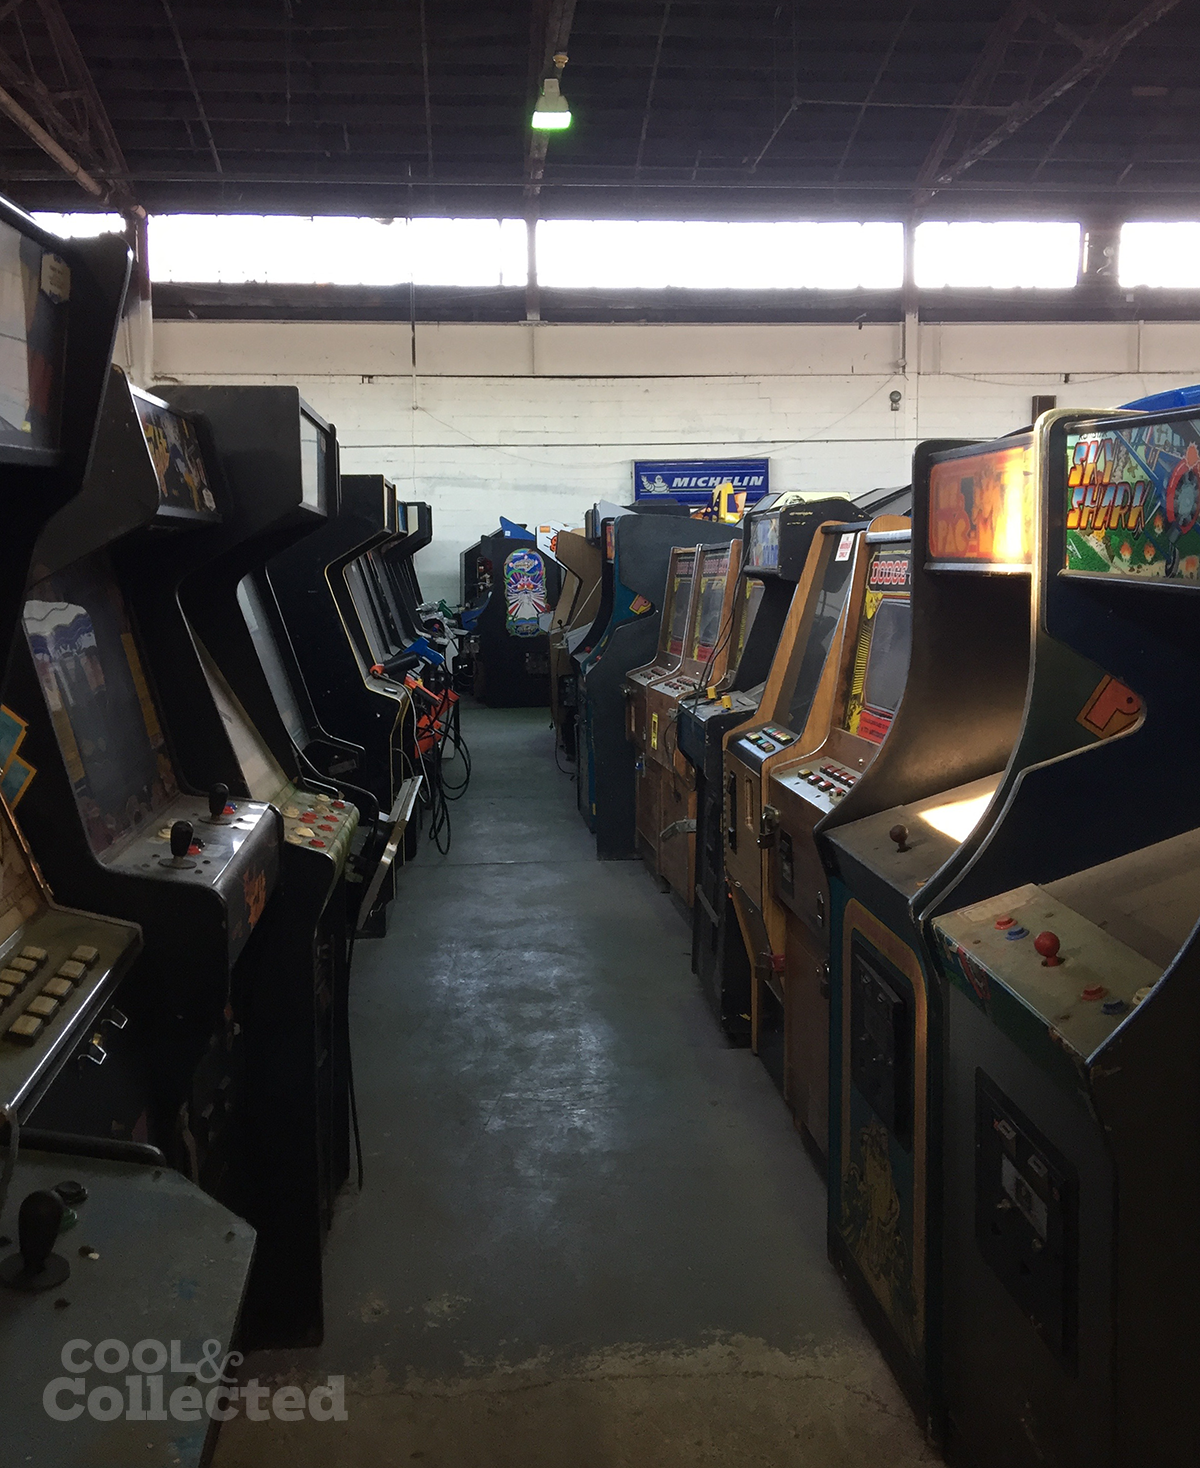 A visit to the arcade graveyard